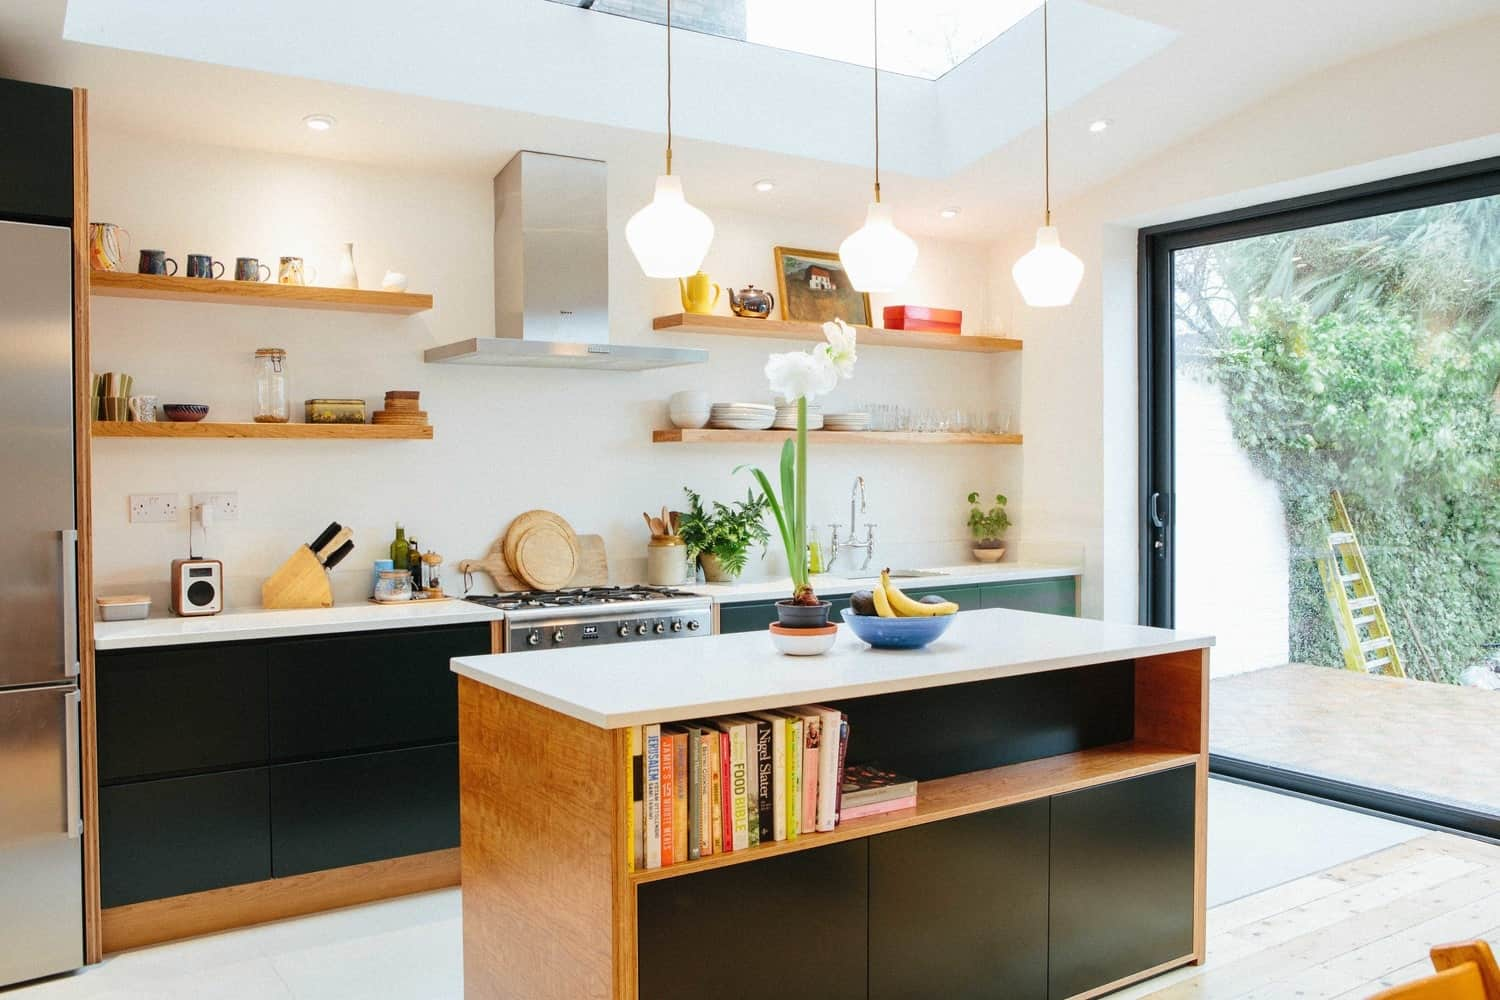 West Dulwich kitchen design by West & Reid.